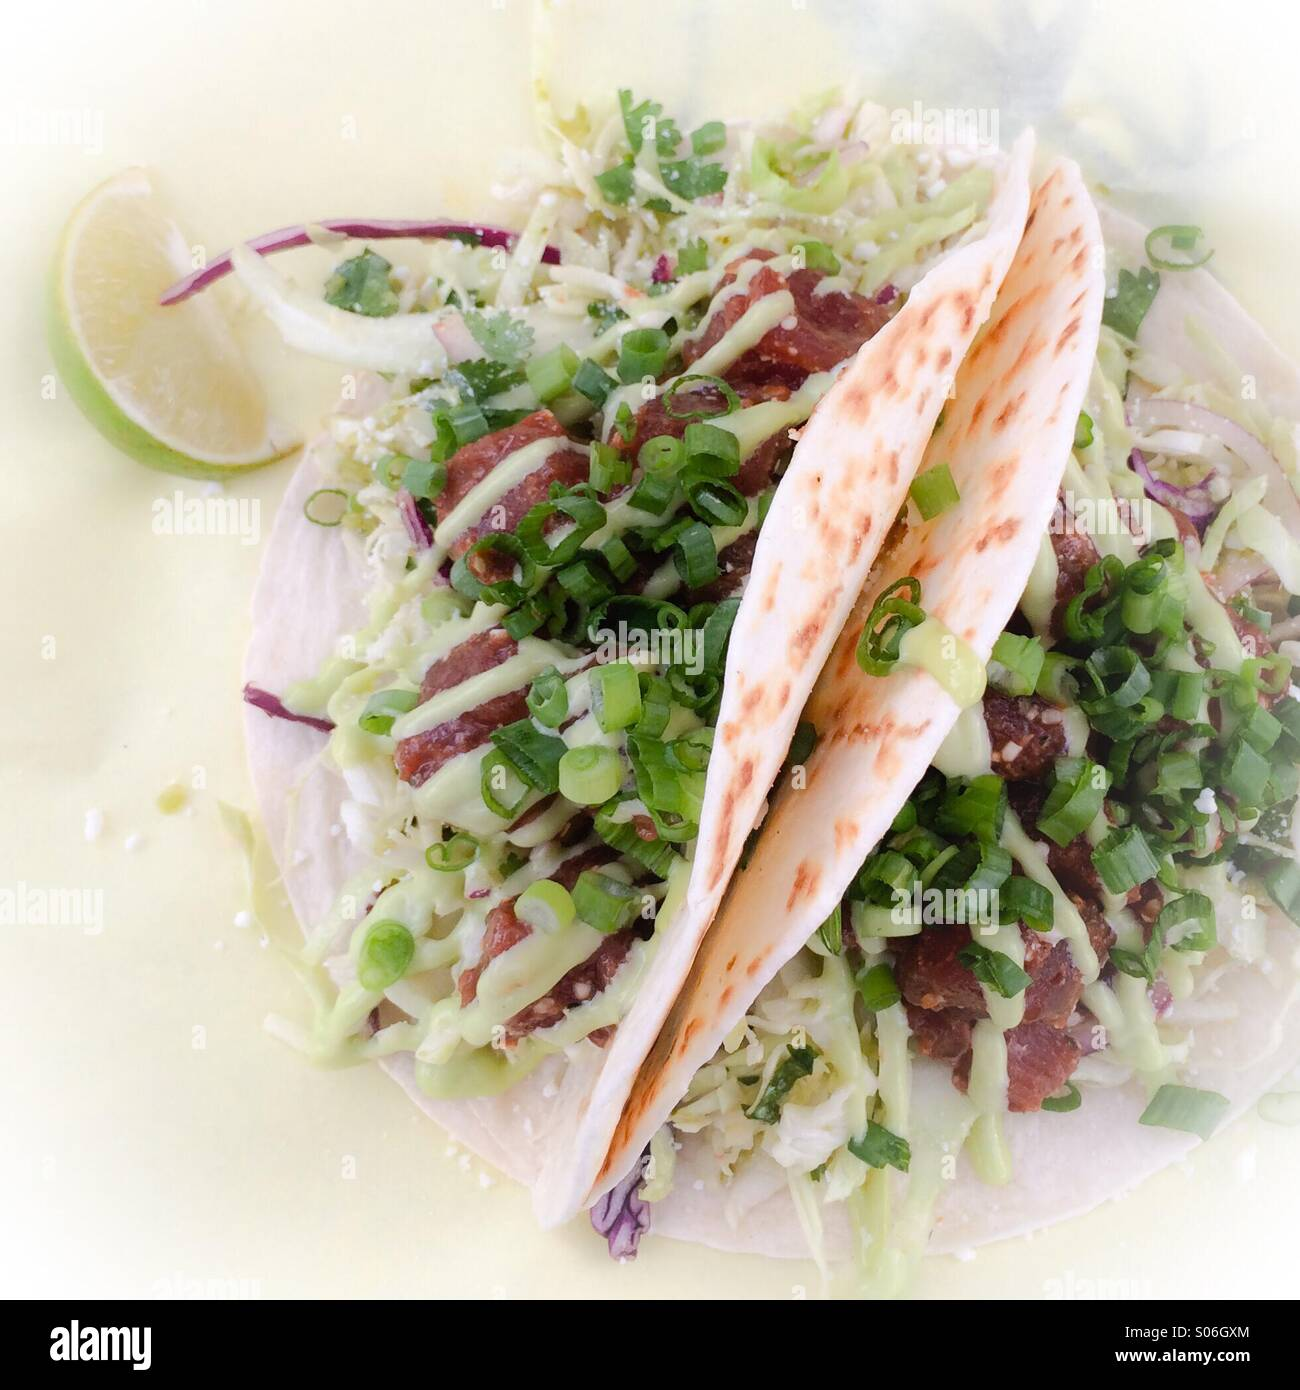 Fish tacos from Fishbox food truck in Portland Oregon - Stock Image